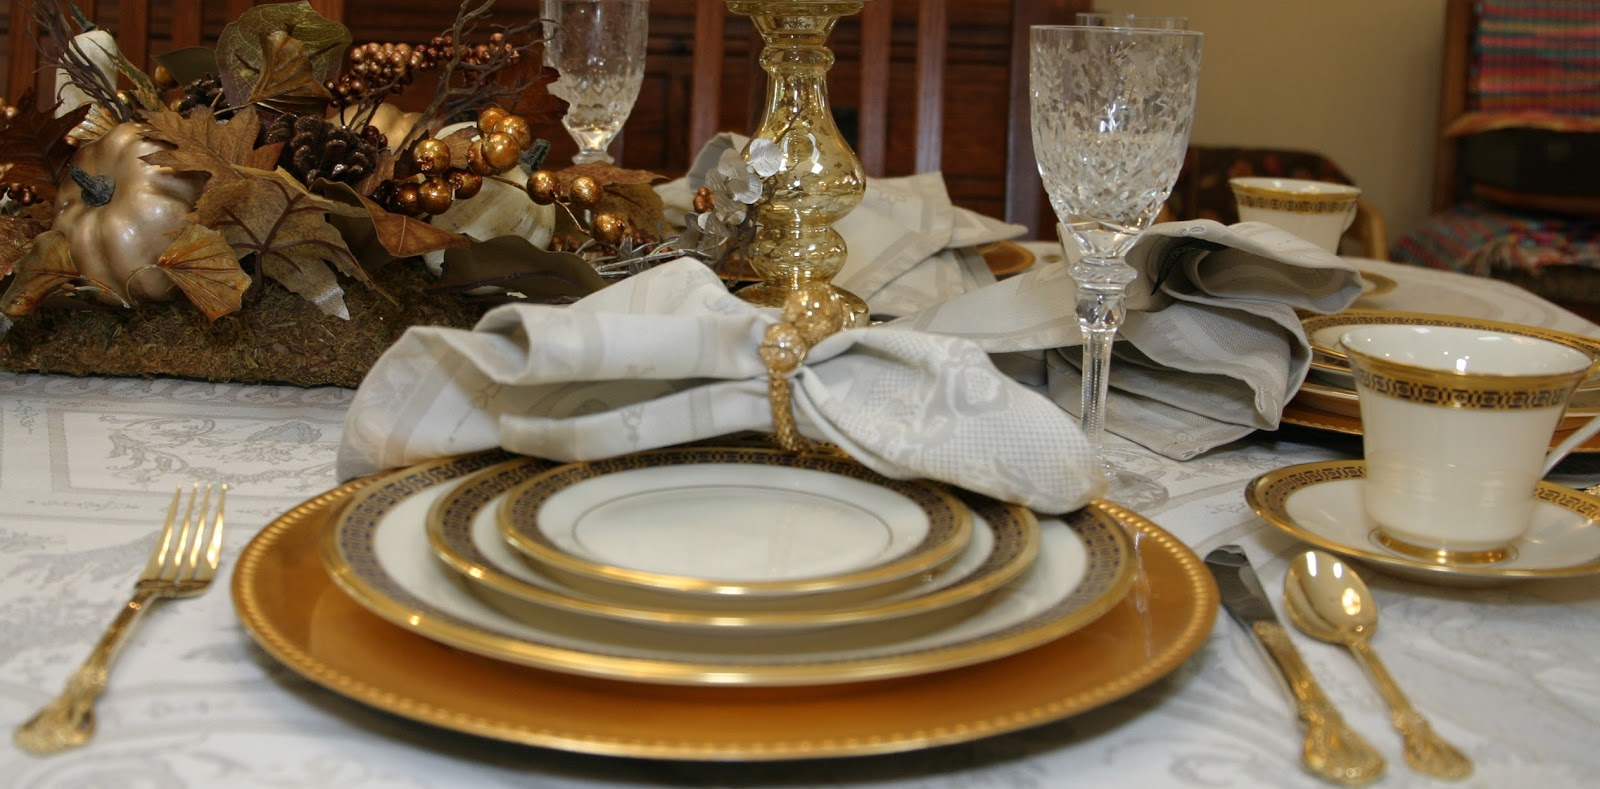 The Magic Hutch: An Unexpected Formal Thanksgiving